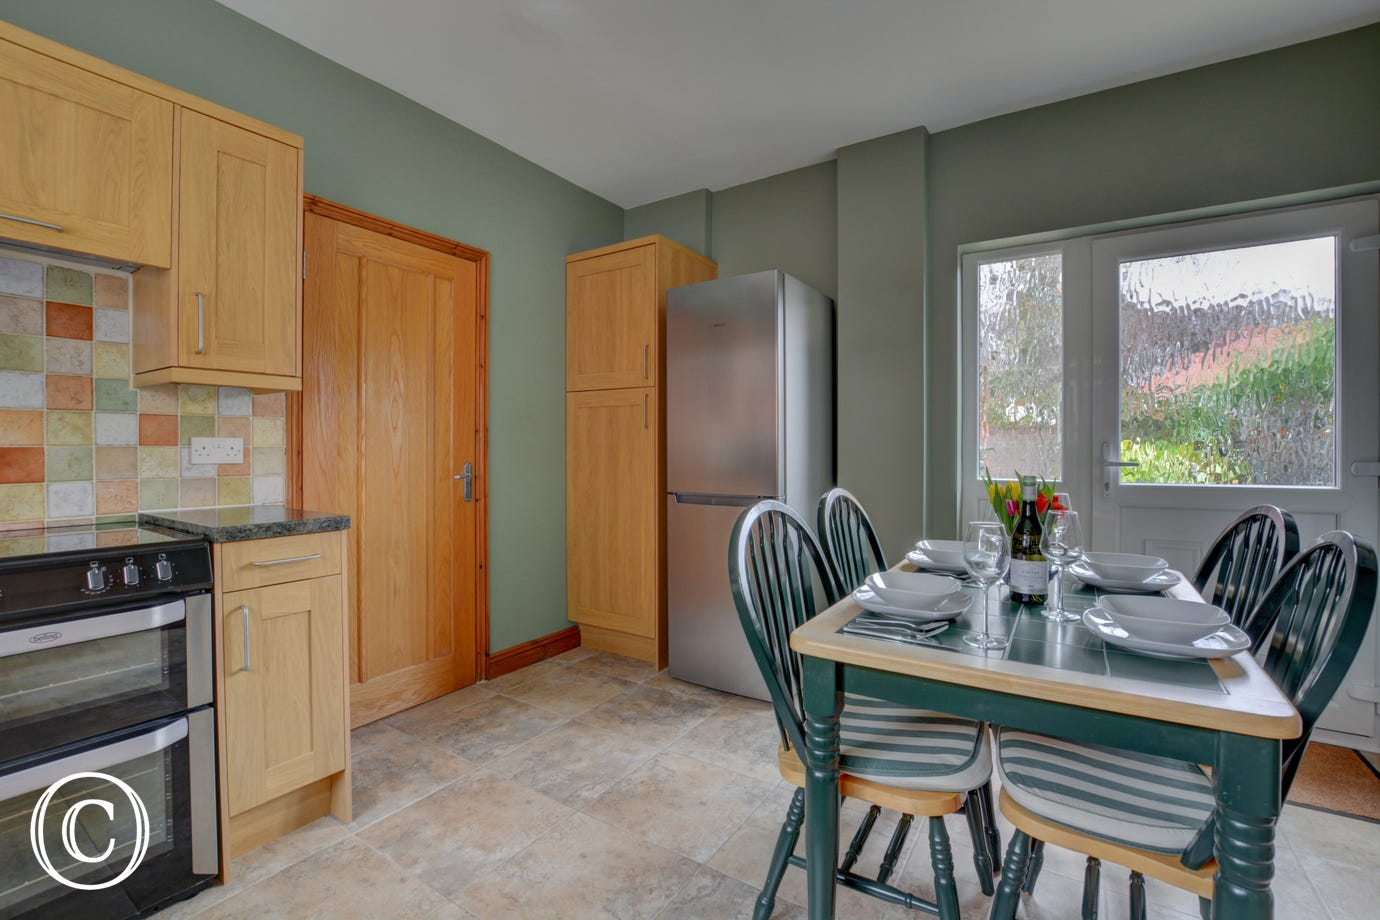 Kitchen and dining area with table and chairs for 4 people.